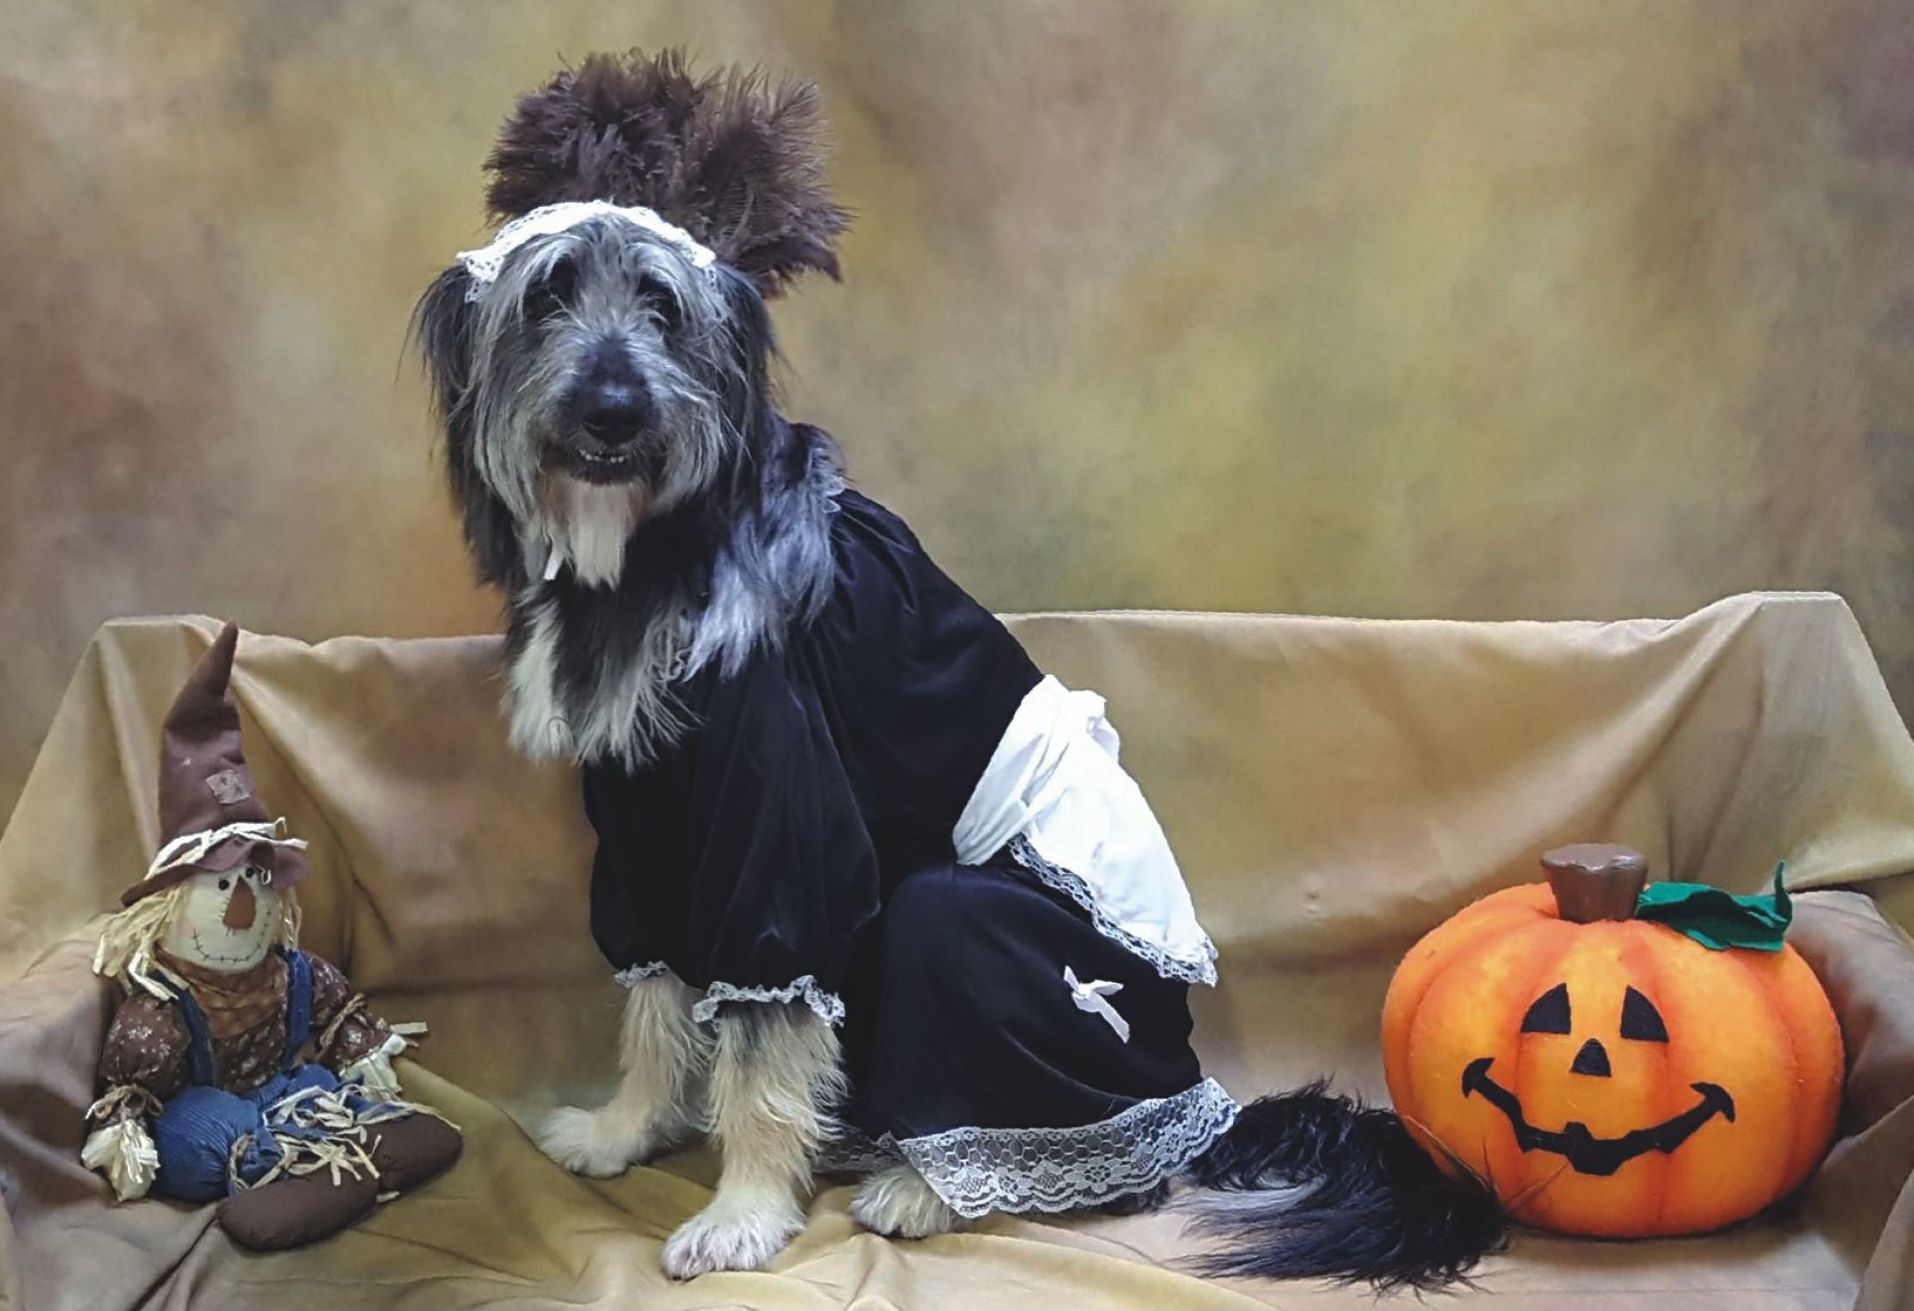 Halloween photos for kids and pets benefits United Animal Friends, Oct. 25